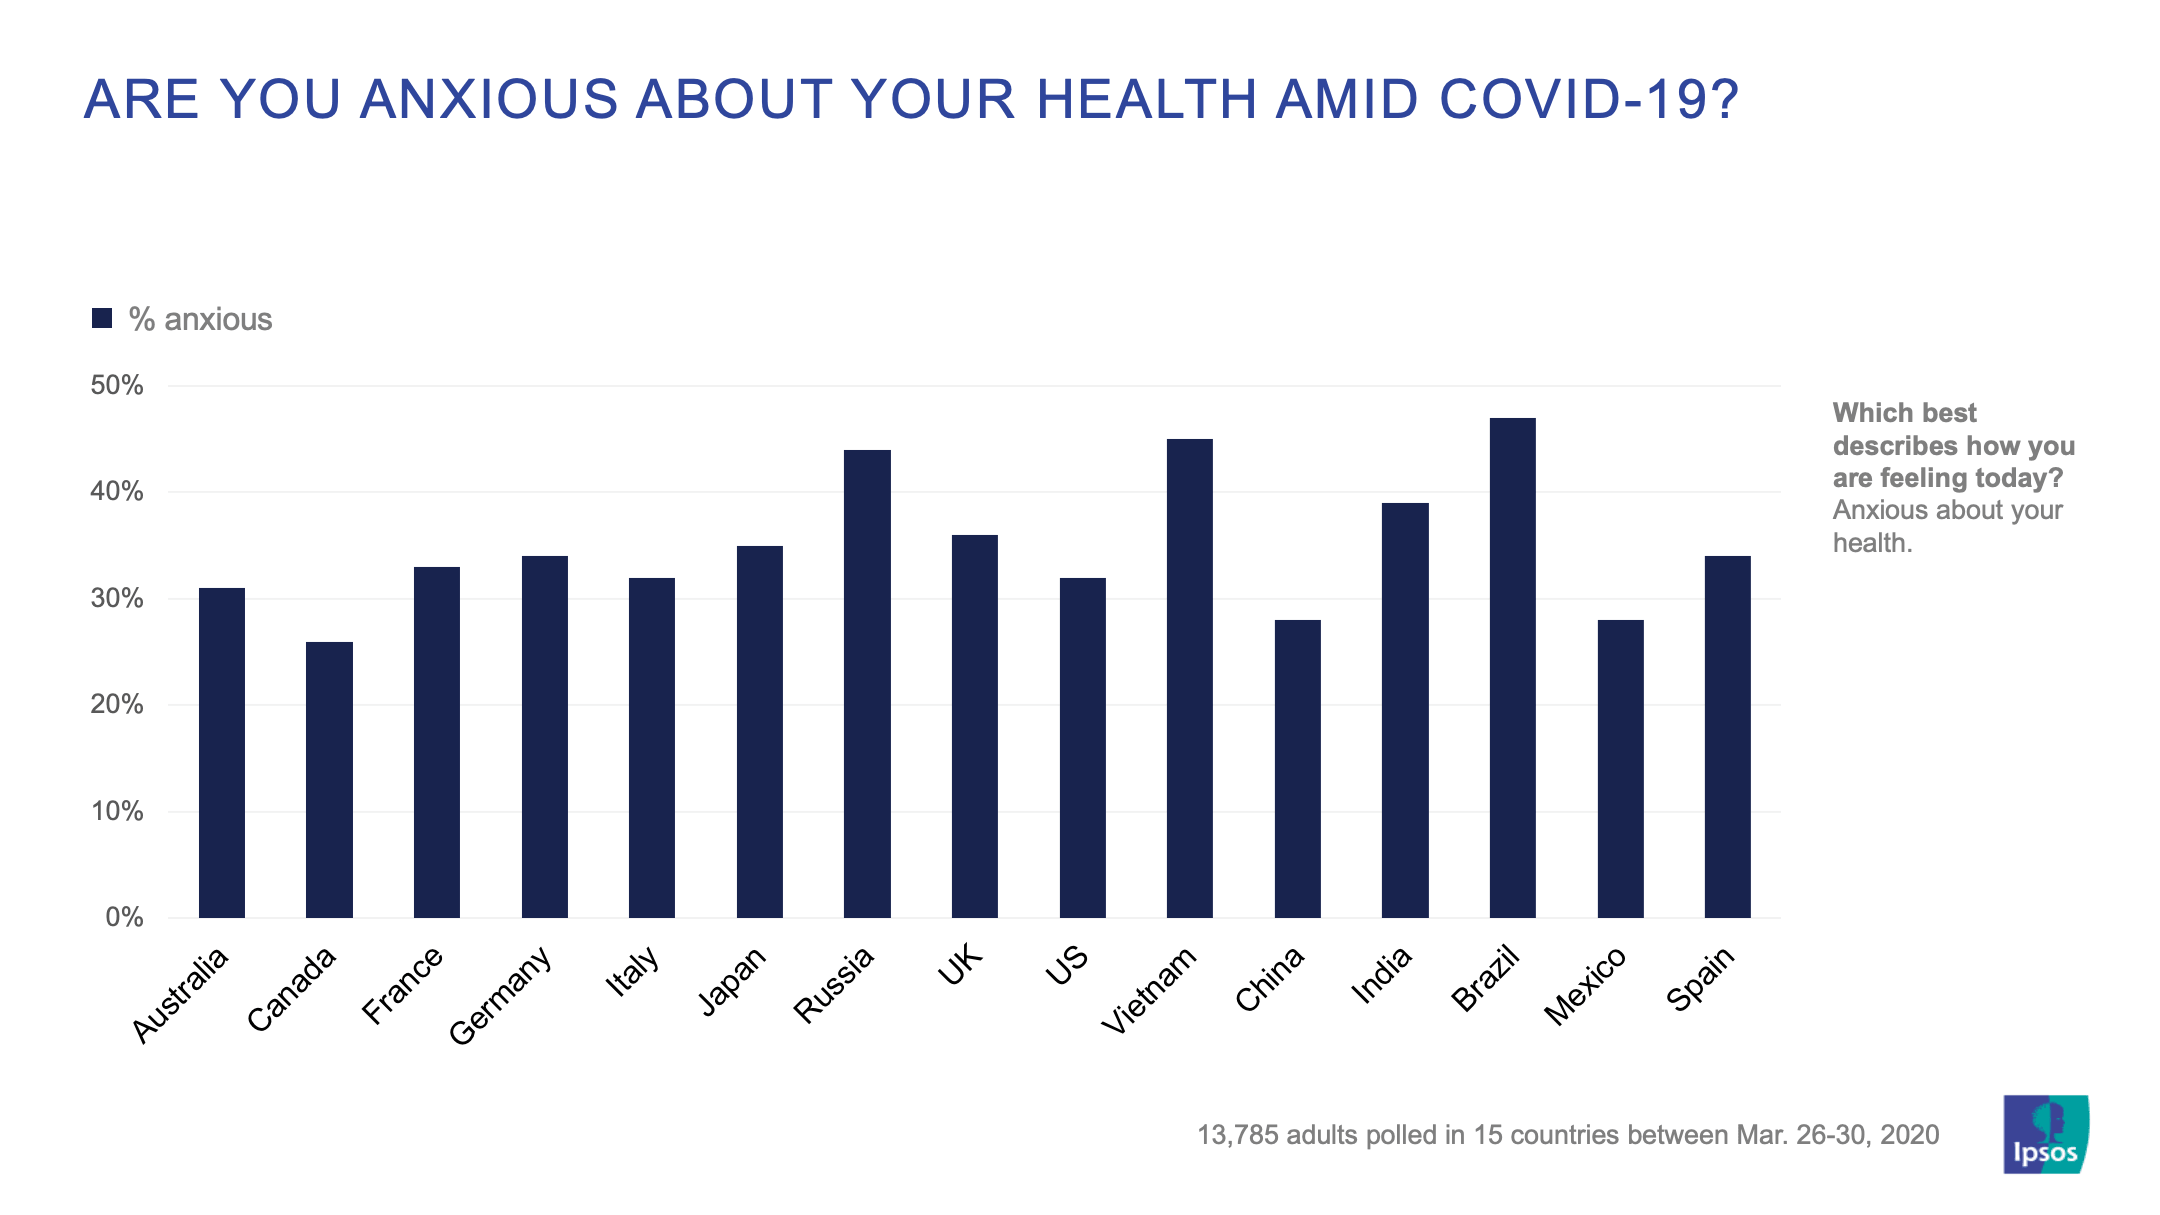 Are you anxious about your health amid covid-19 | Ipsos